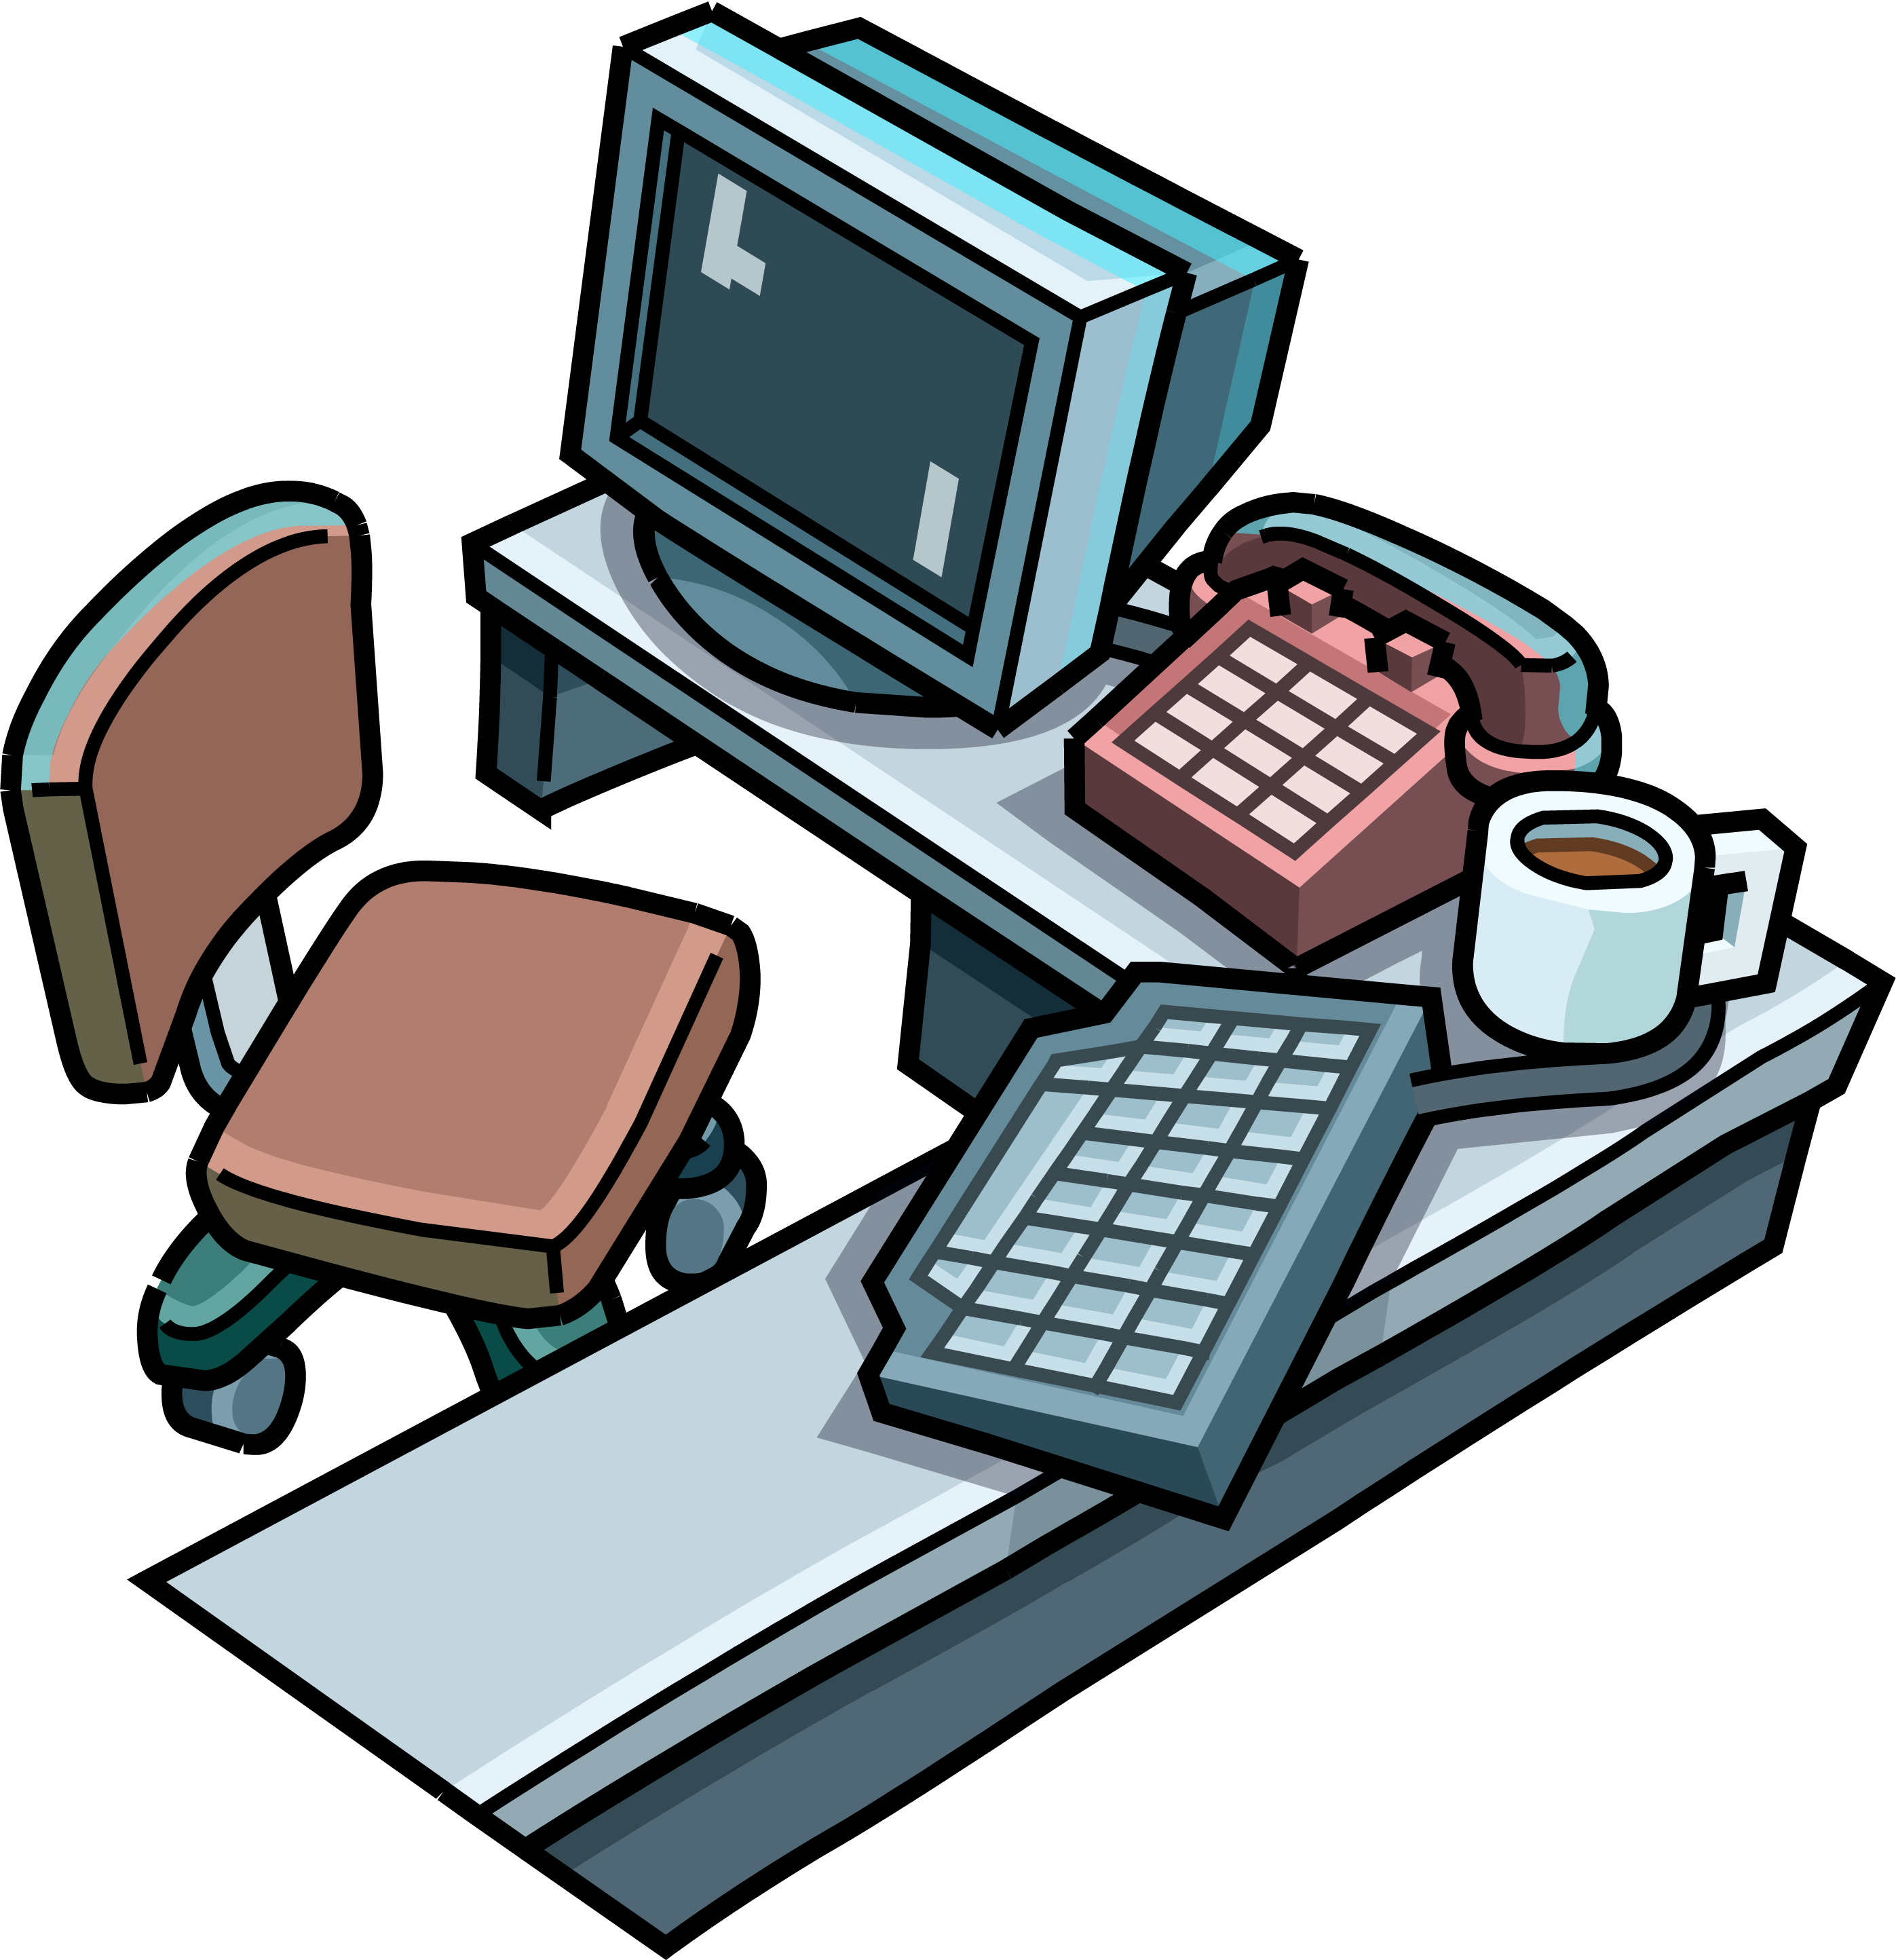 Clipart table club penguin. Codes cheats and secrets